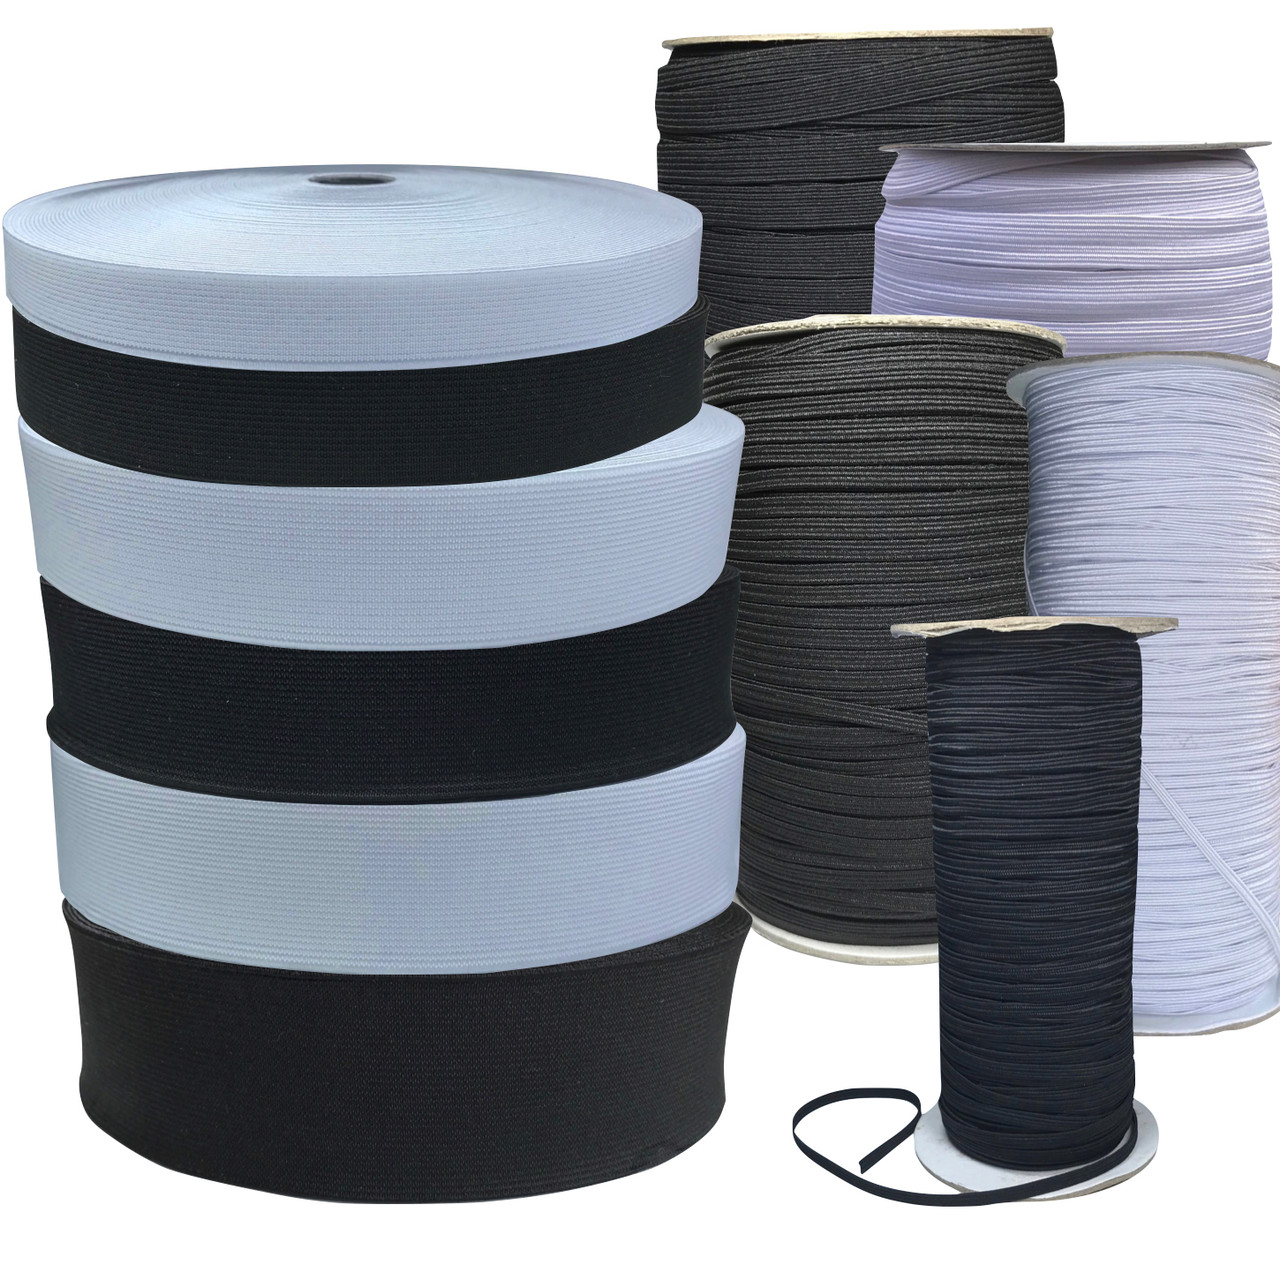 Whole Roll of Black or White Flat Woven Elastic ** 25 Meters